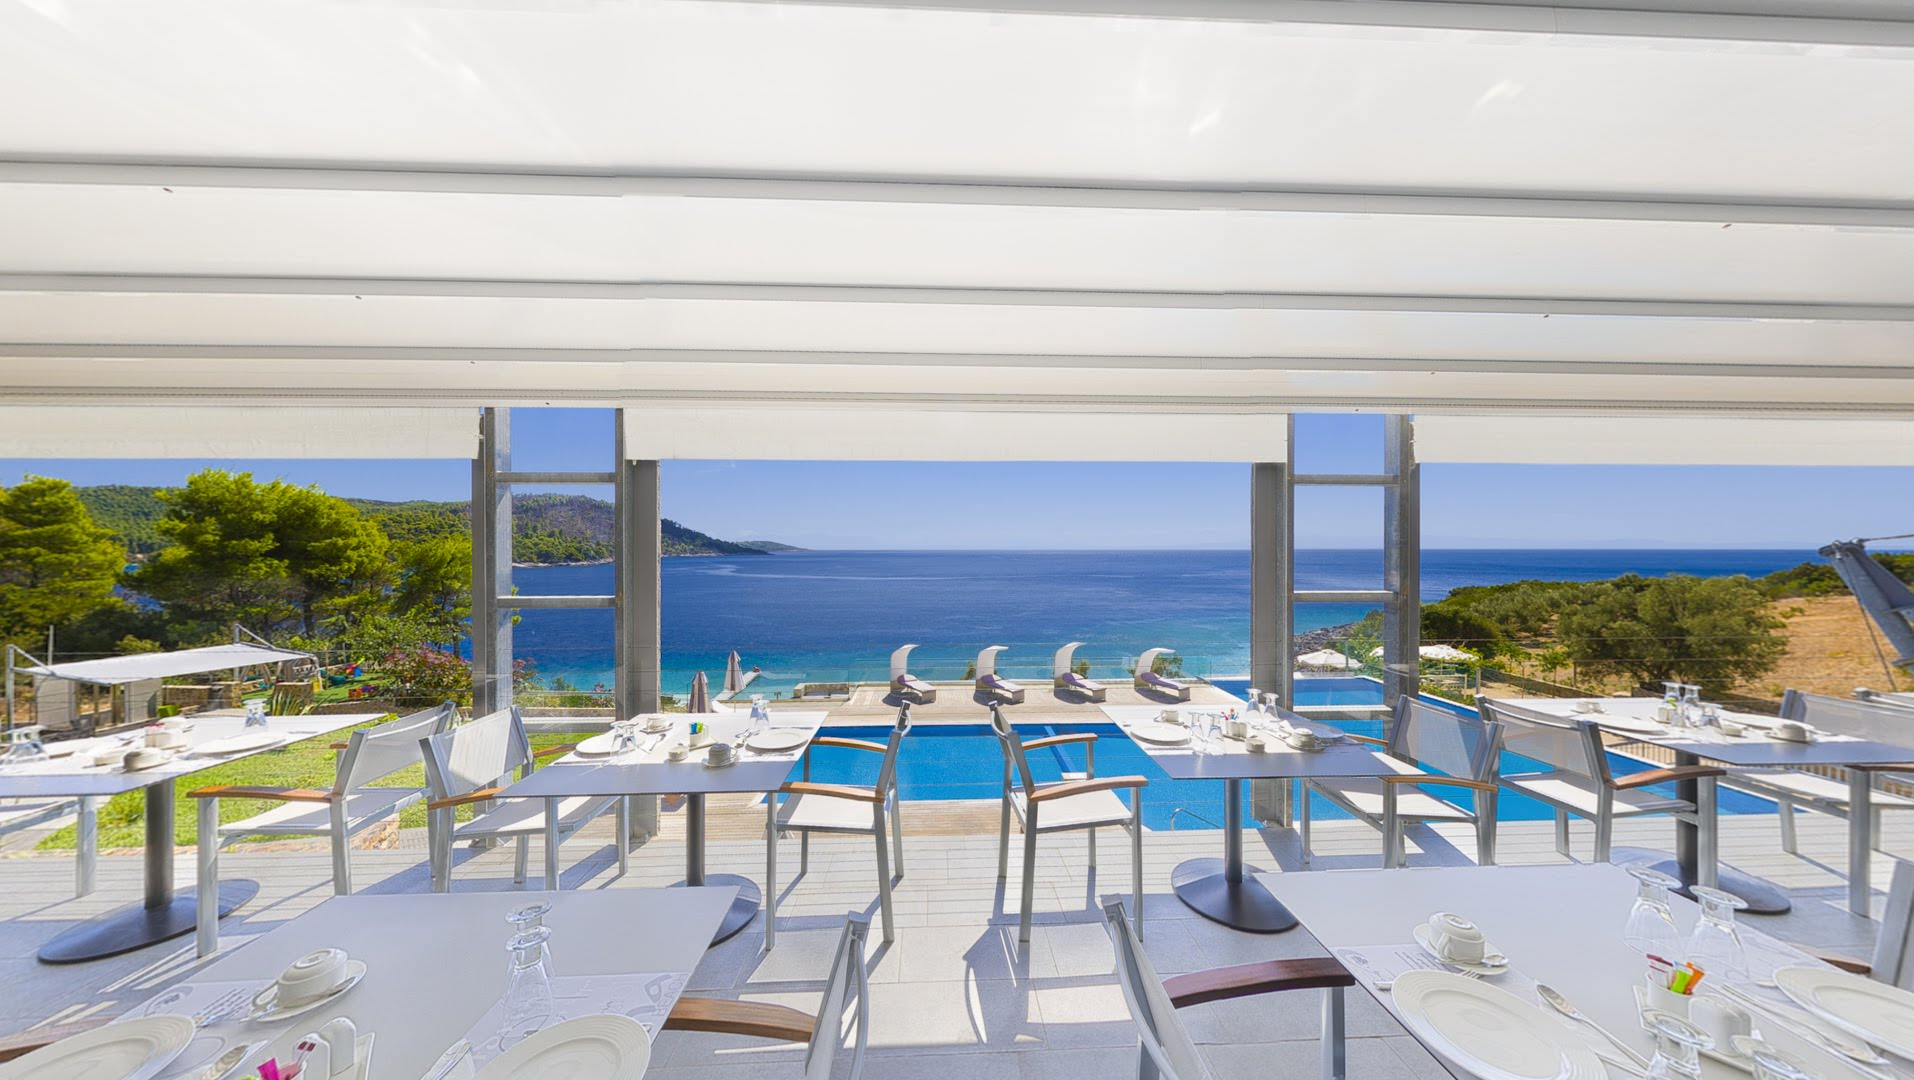 skopelos hotels adrina resort breakfast 2